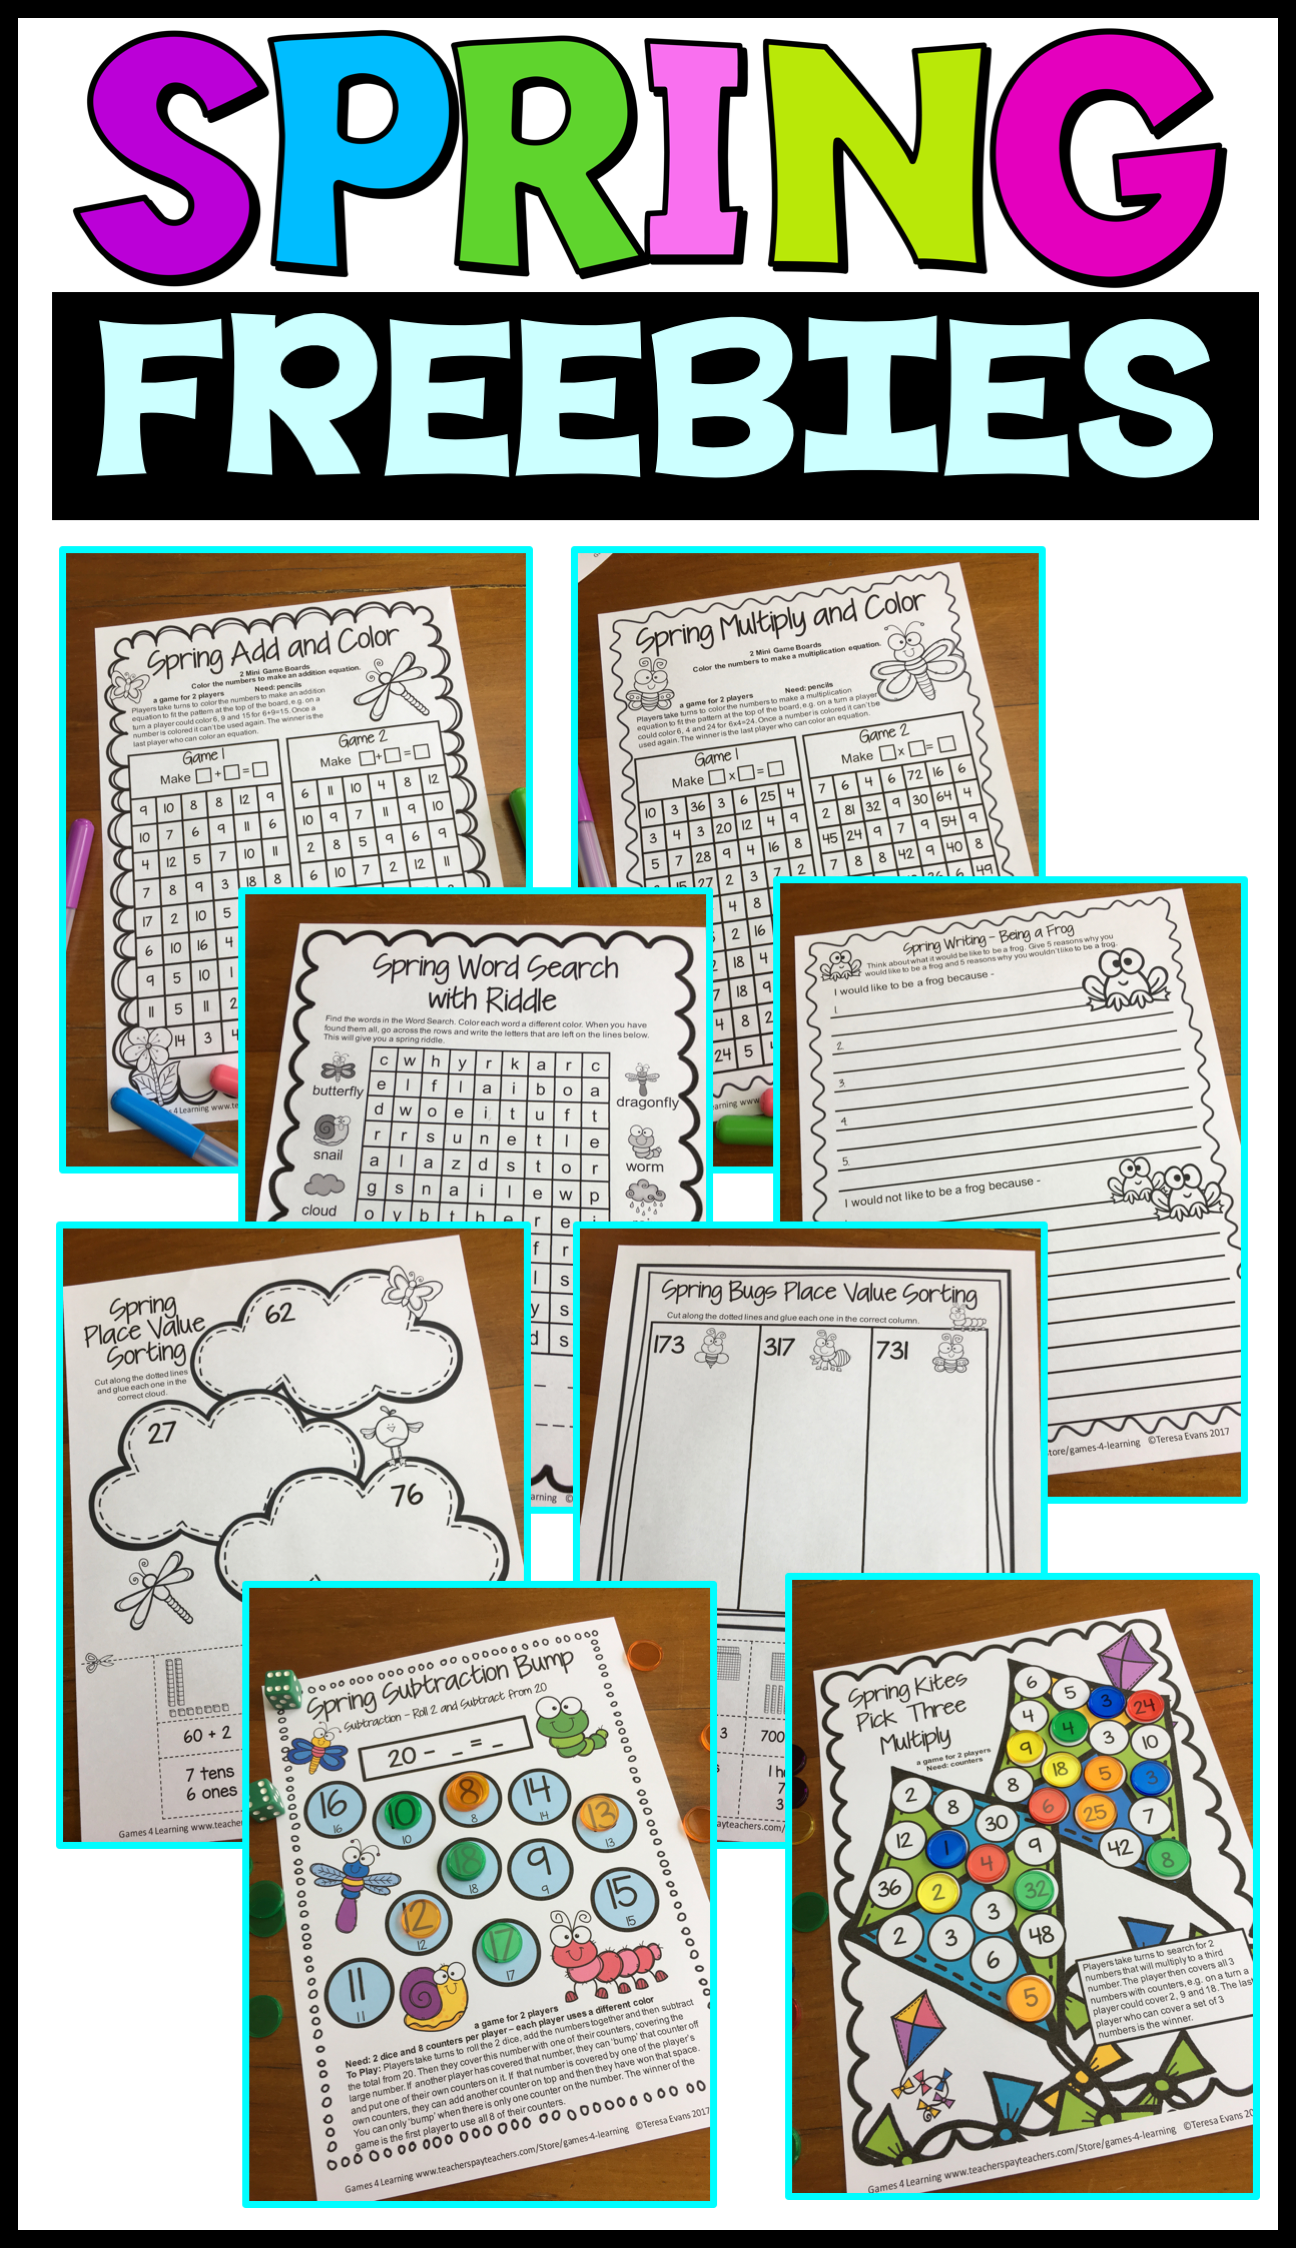 Spring FREEBIES - No Prep Spring printables - Includes Spring math board games, Spring math game sheets,  Spring place value cut and paste activities, Spring writing prompt and a Spring word search.